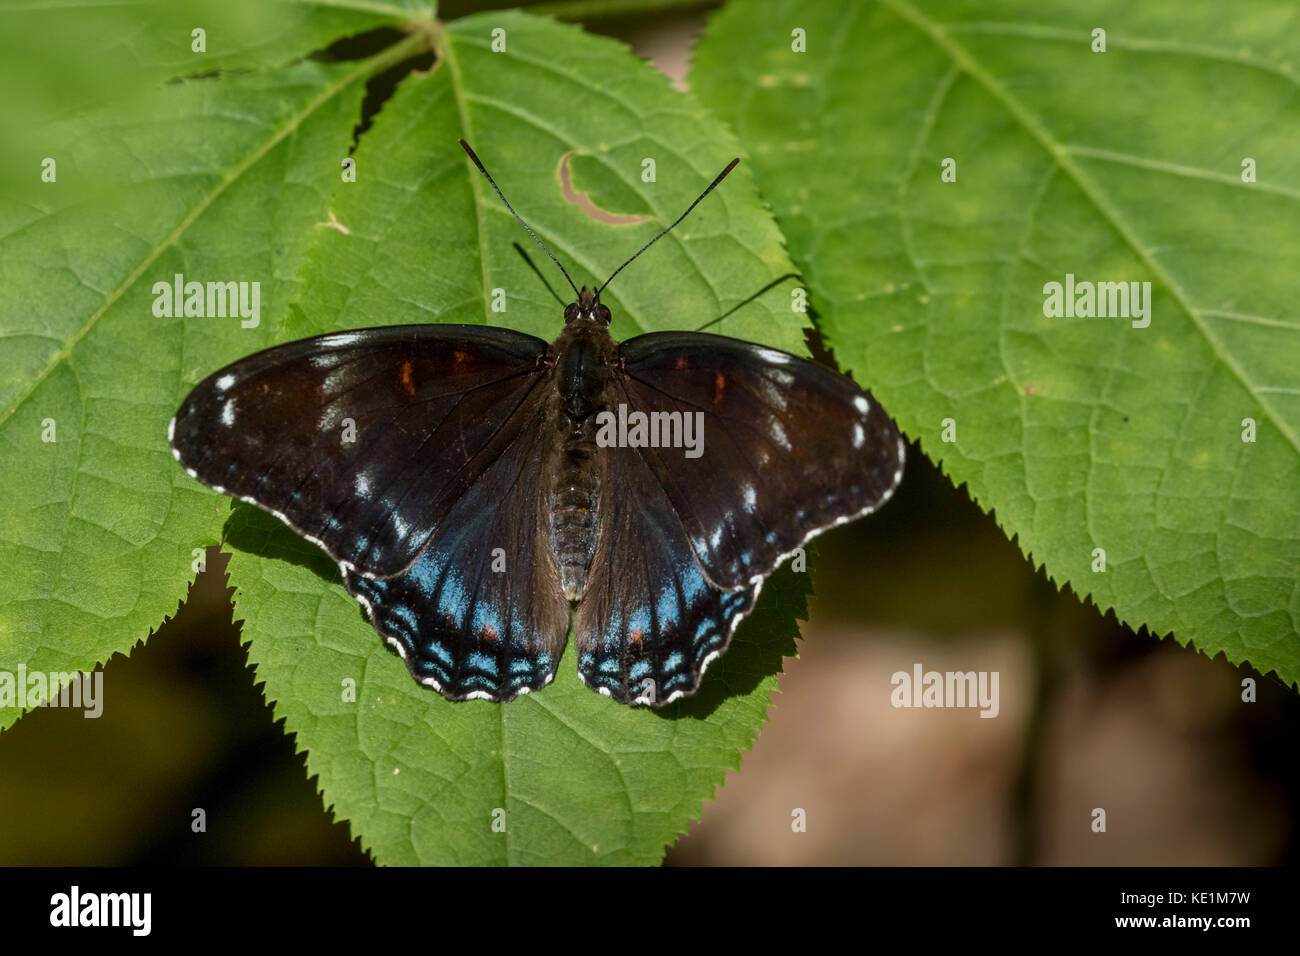 Limenitis arthemis butterfly hybrid of subspecies Red-spotted Purple (Limenitis arthemis astyanax) and White Admiral - Stock Image